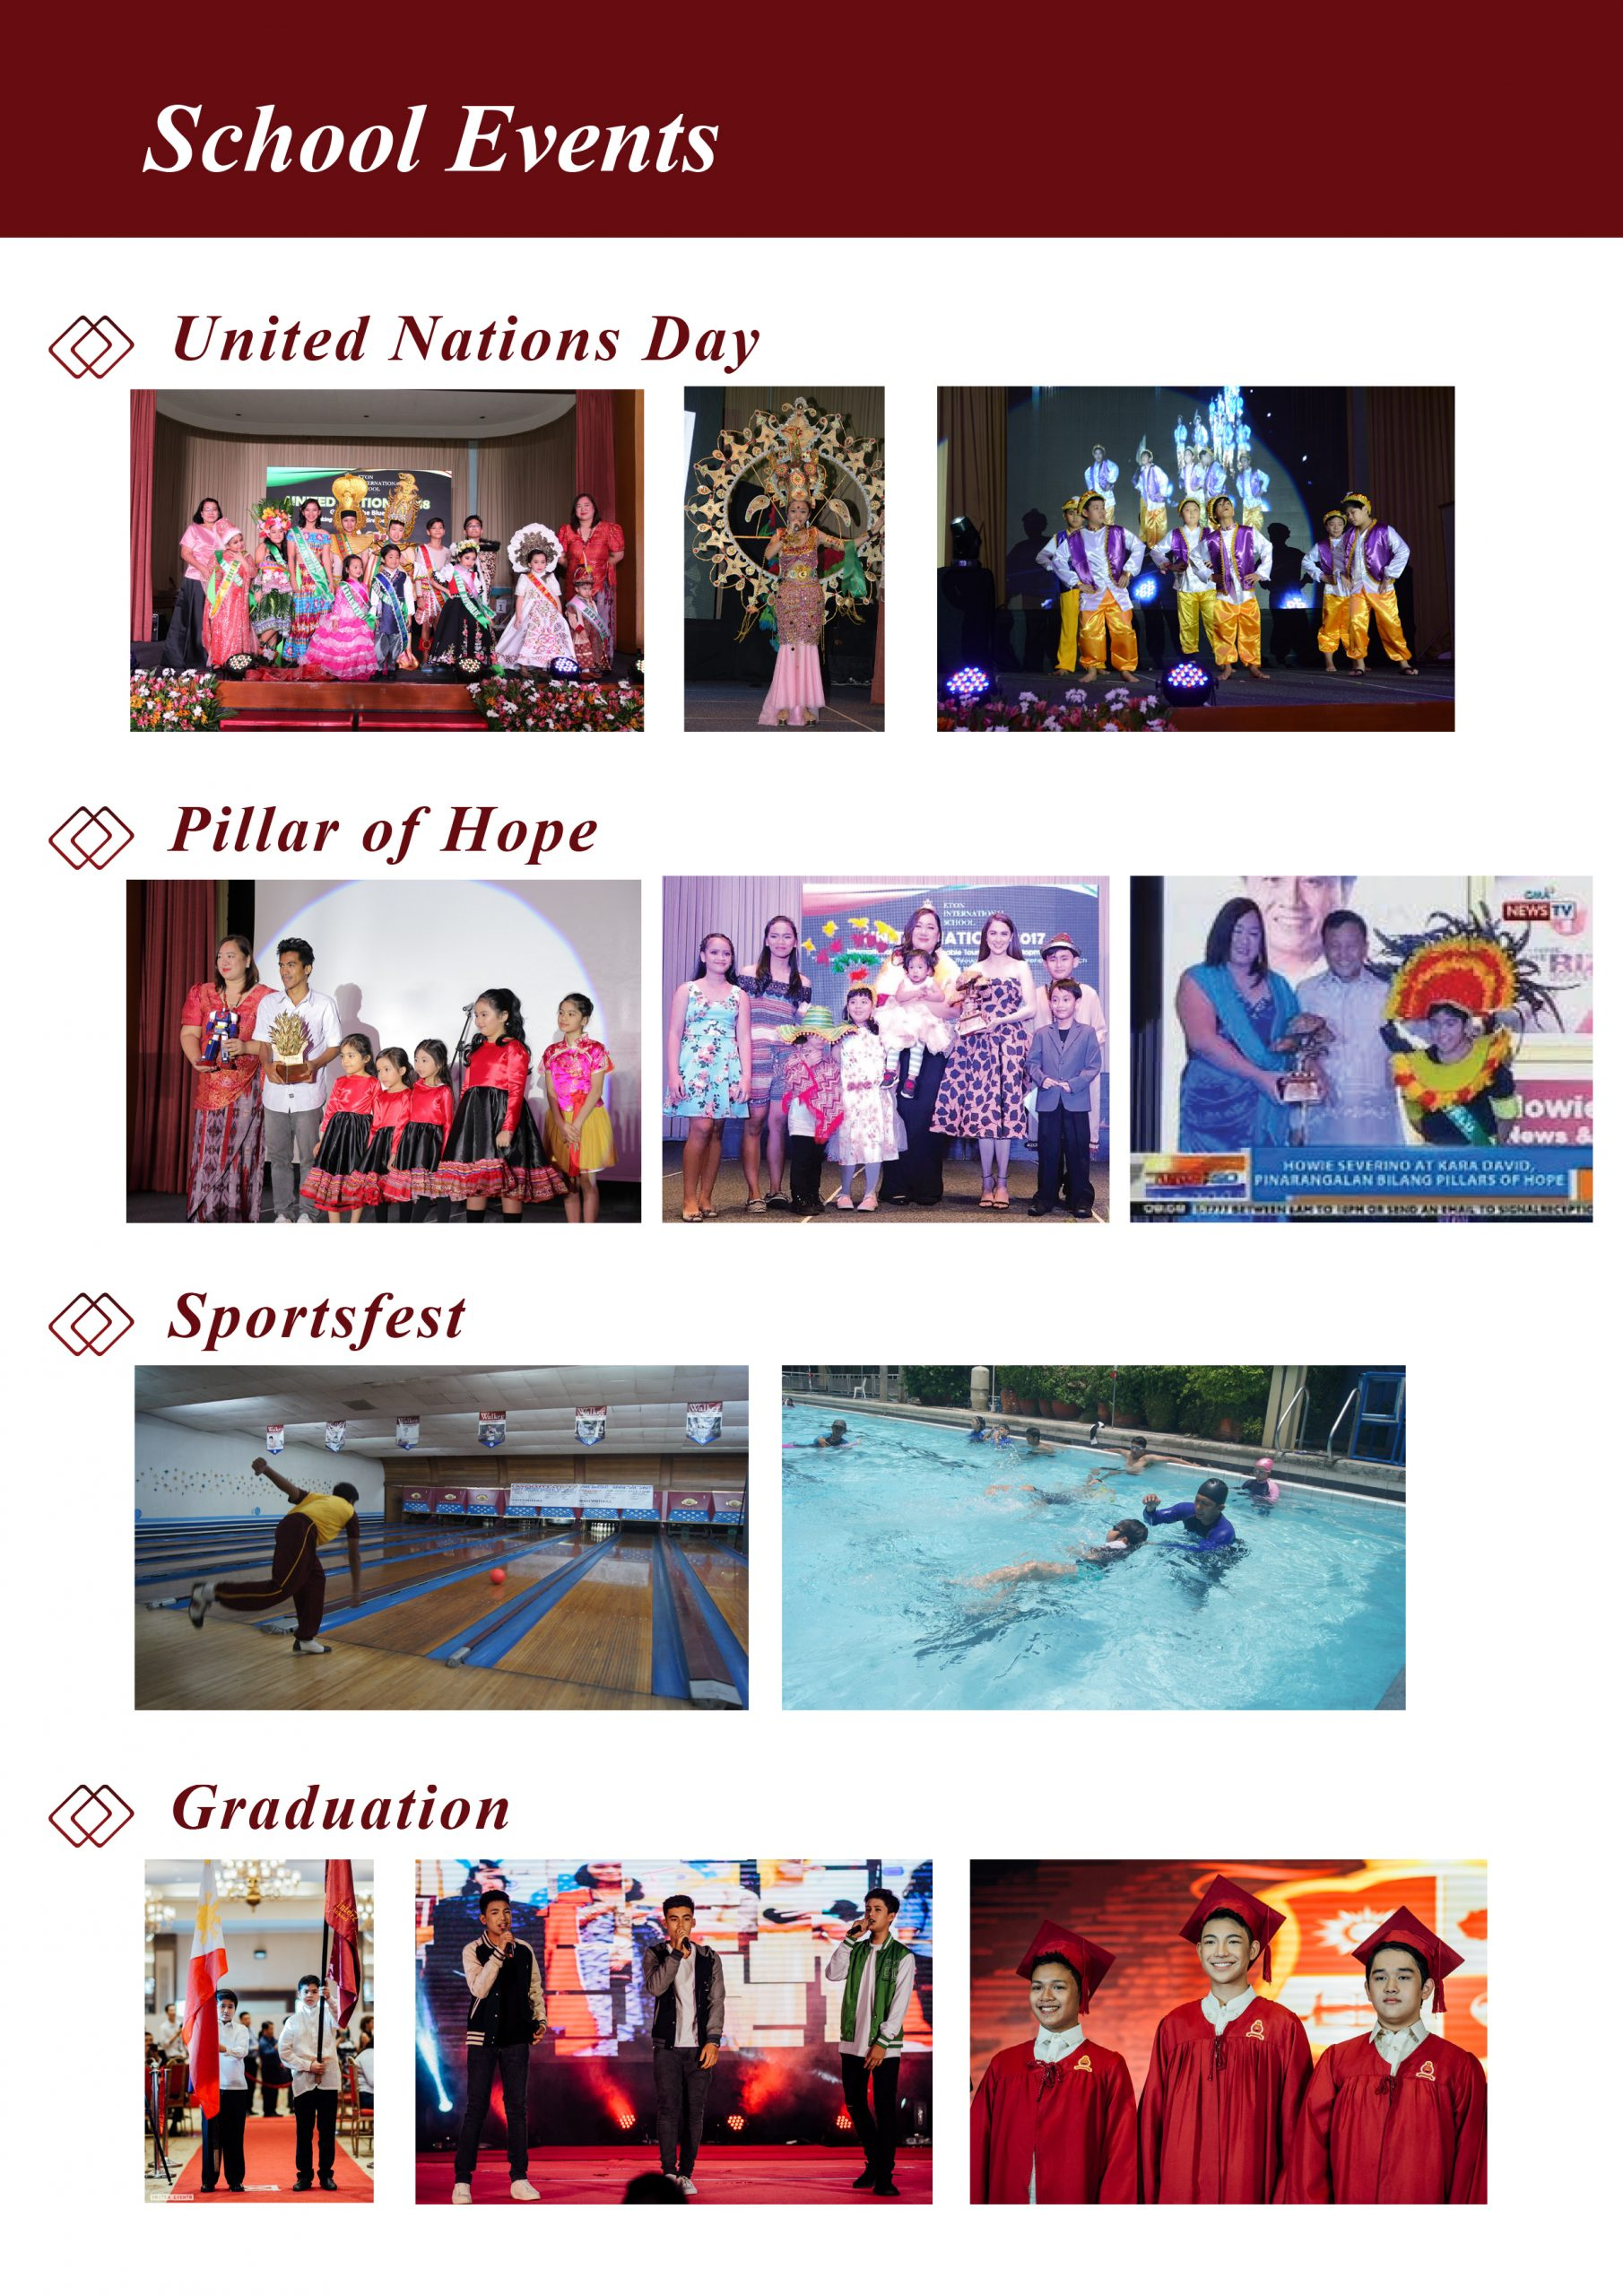 School Events scaled